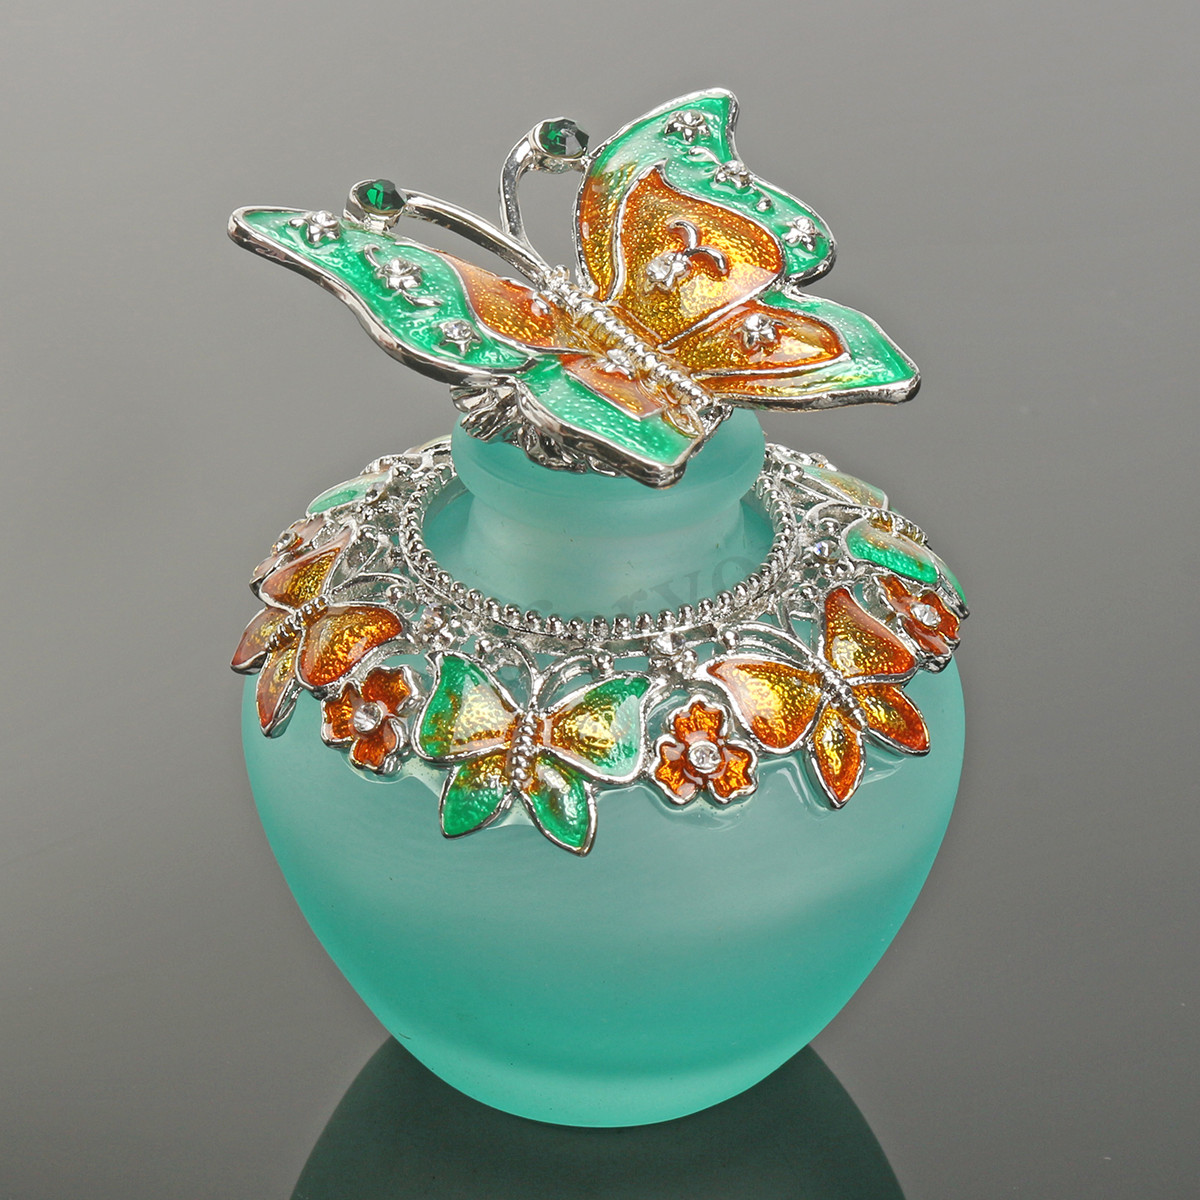 Ebay Vases for Sale Of 40ml Diy Handmade Vintage Empty Crystal butterfly Glass Perfume Pertaining to Detail Image